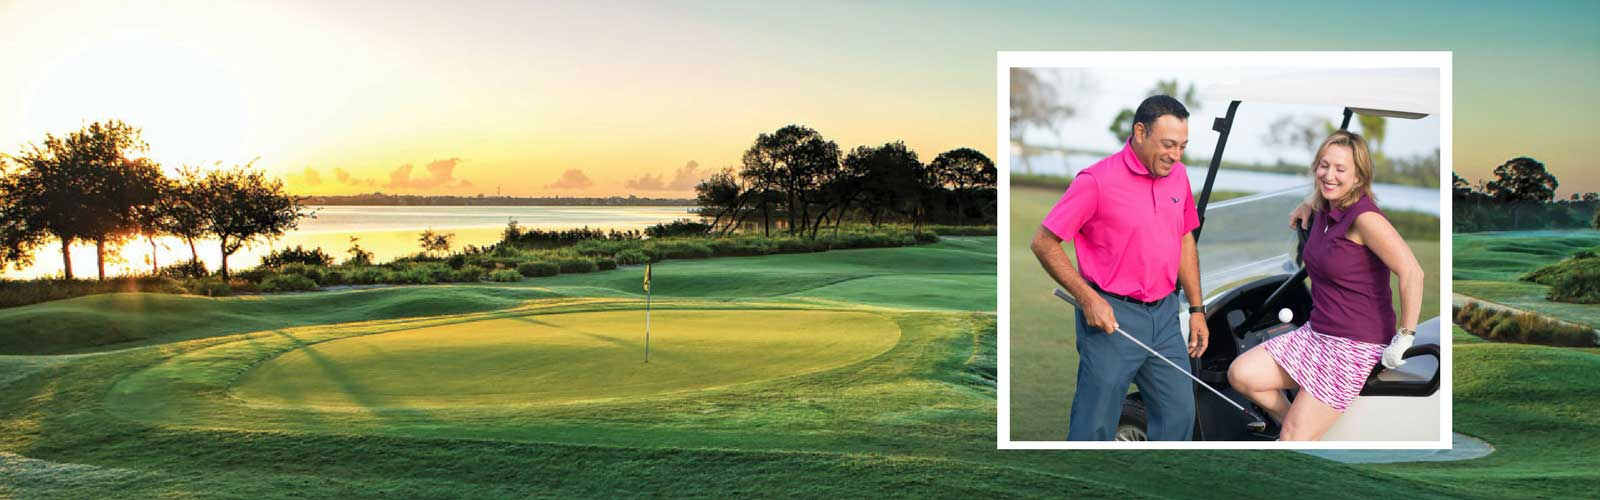 Harbour Ridge Swings into the National Spotlight on Golf Channel This Week